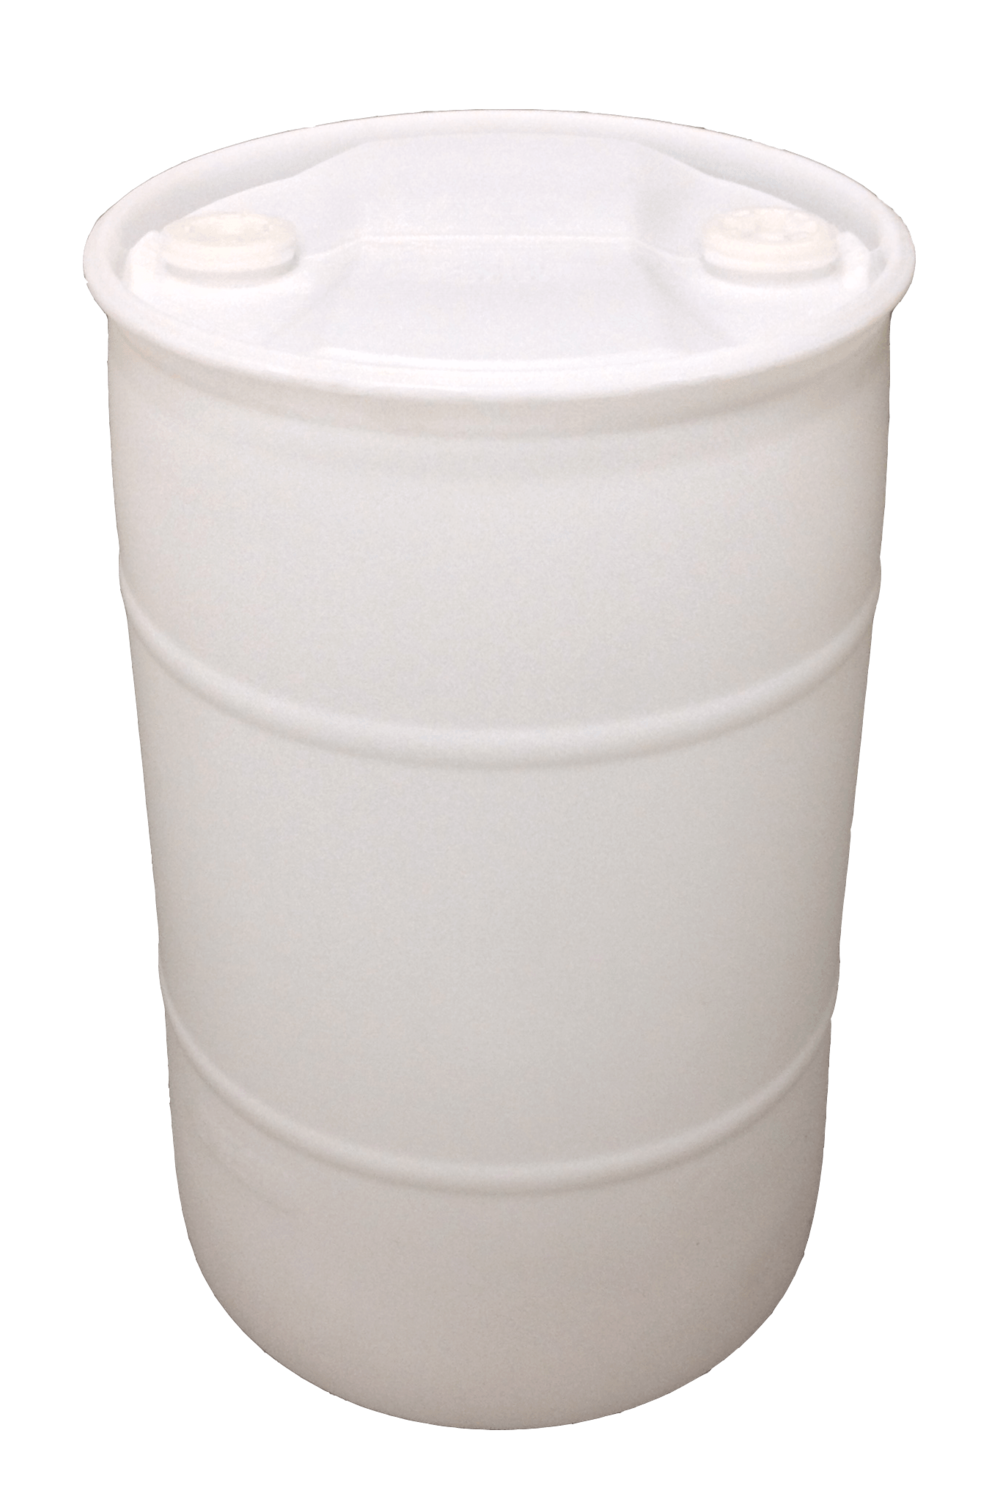 Drum clipart drum container. Western canadian and tote